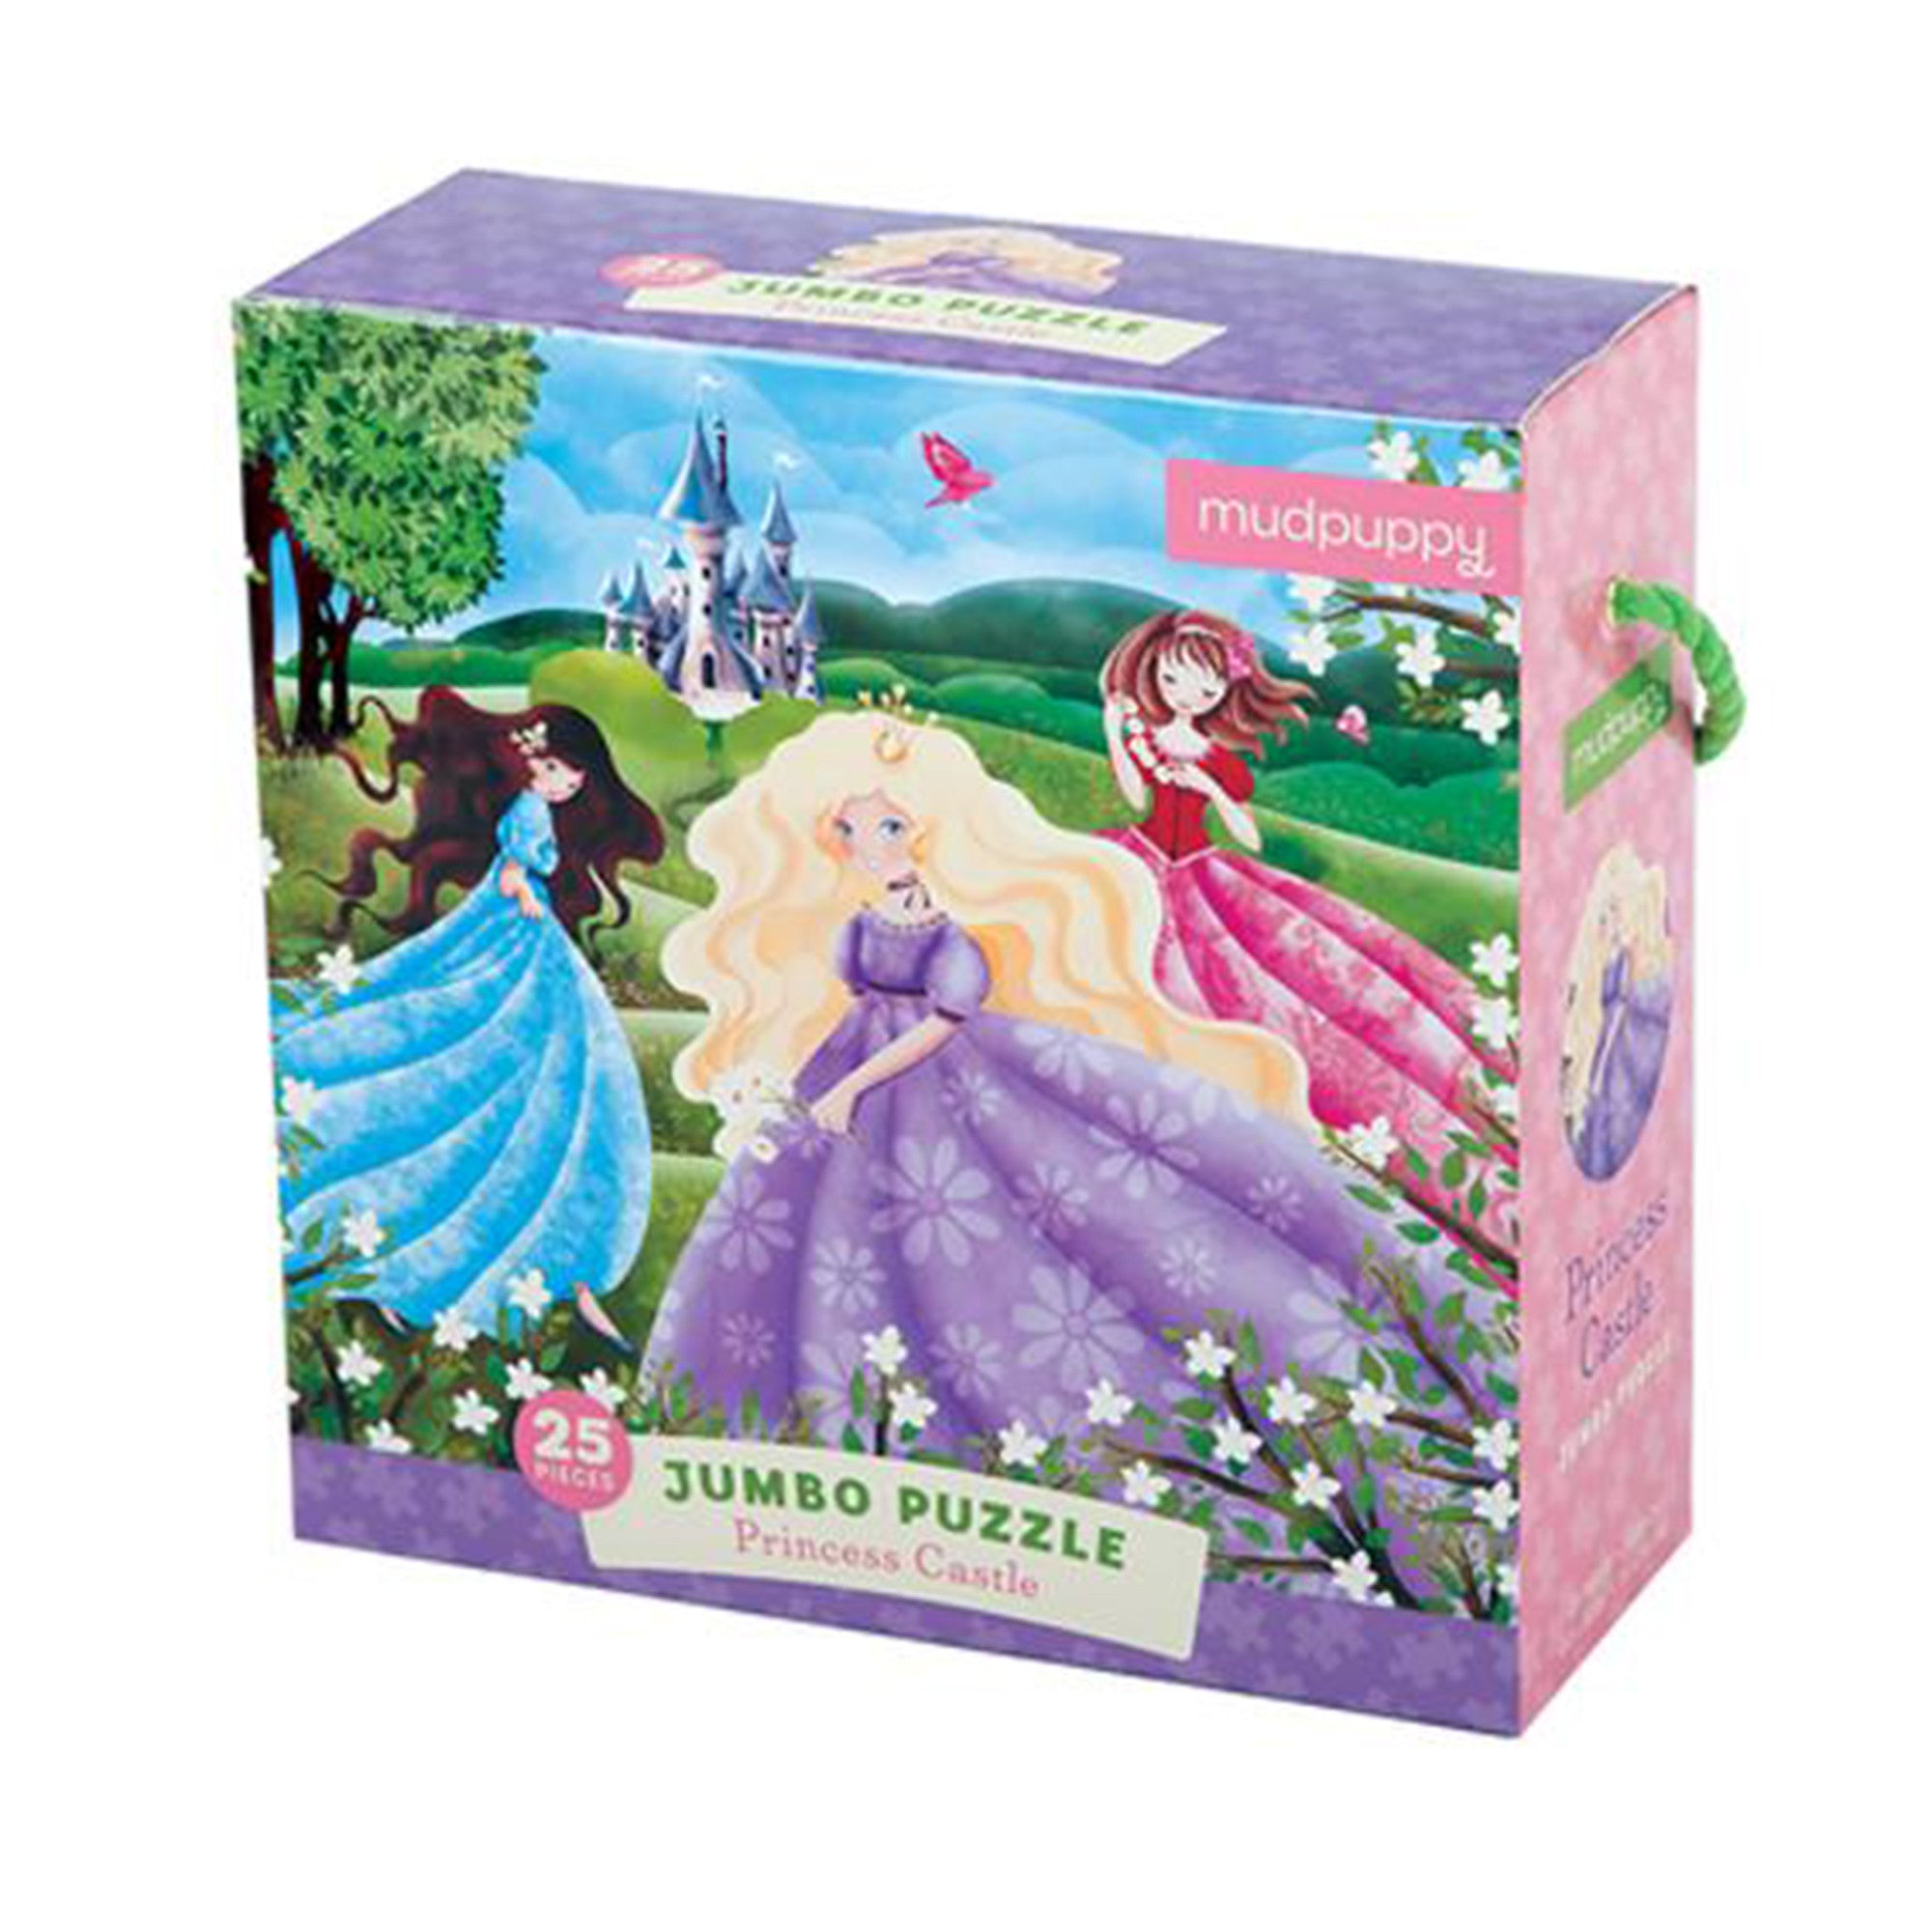 MudPuppy Jumbo Puzzle 25 Piece Mudpuppy Puzzles Princess Castle at Little Earth Nest Eco Shop